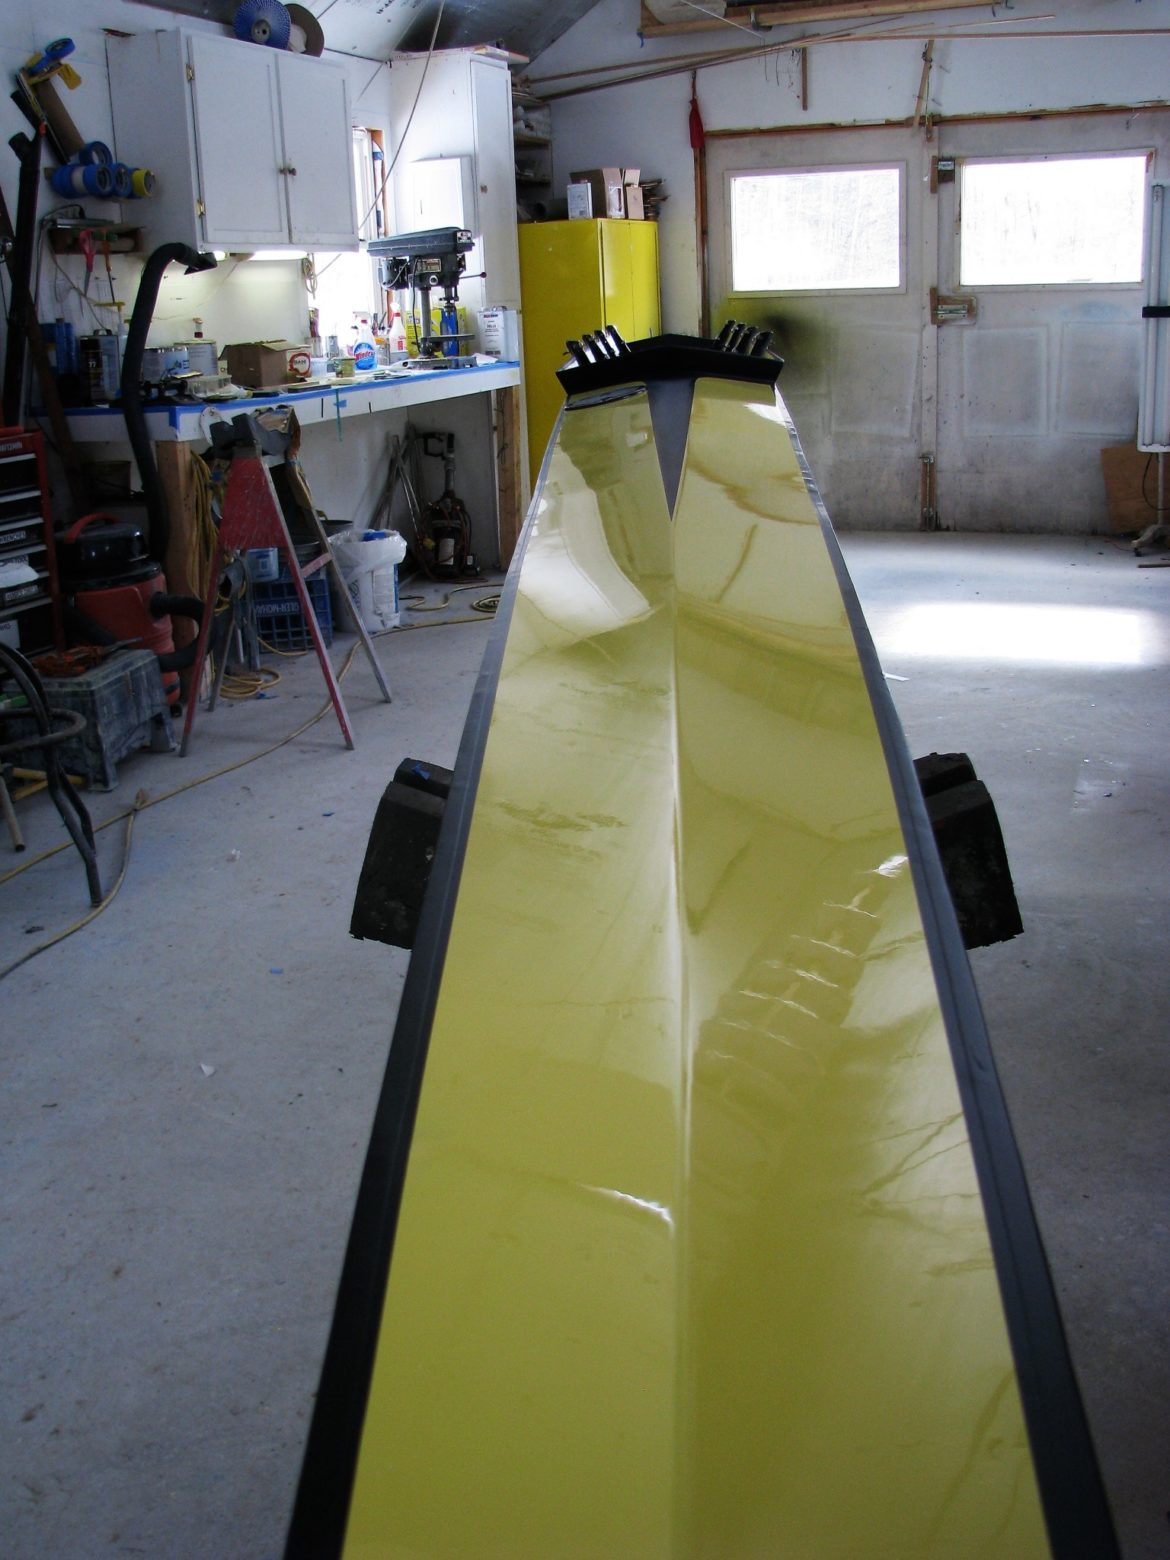 Rowing shell repair, structural and cosmetic - Saratoga Small Craft